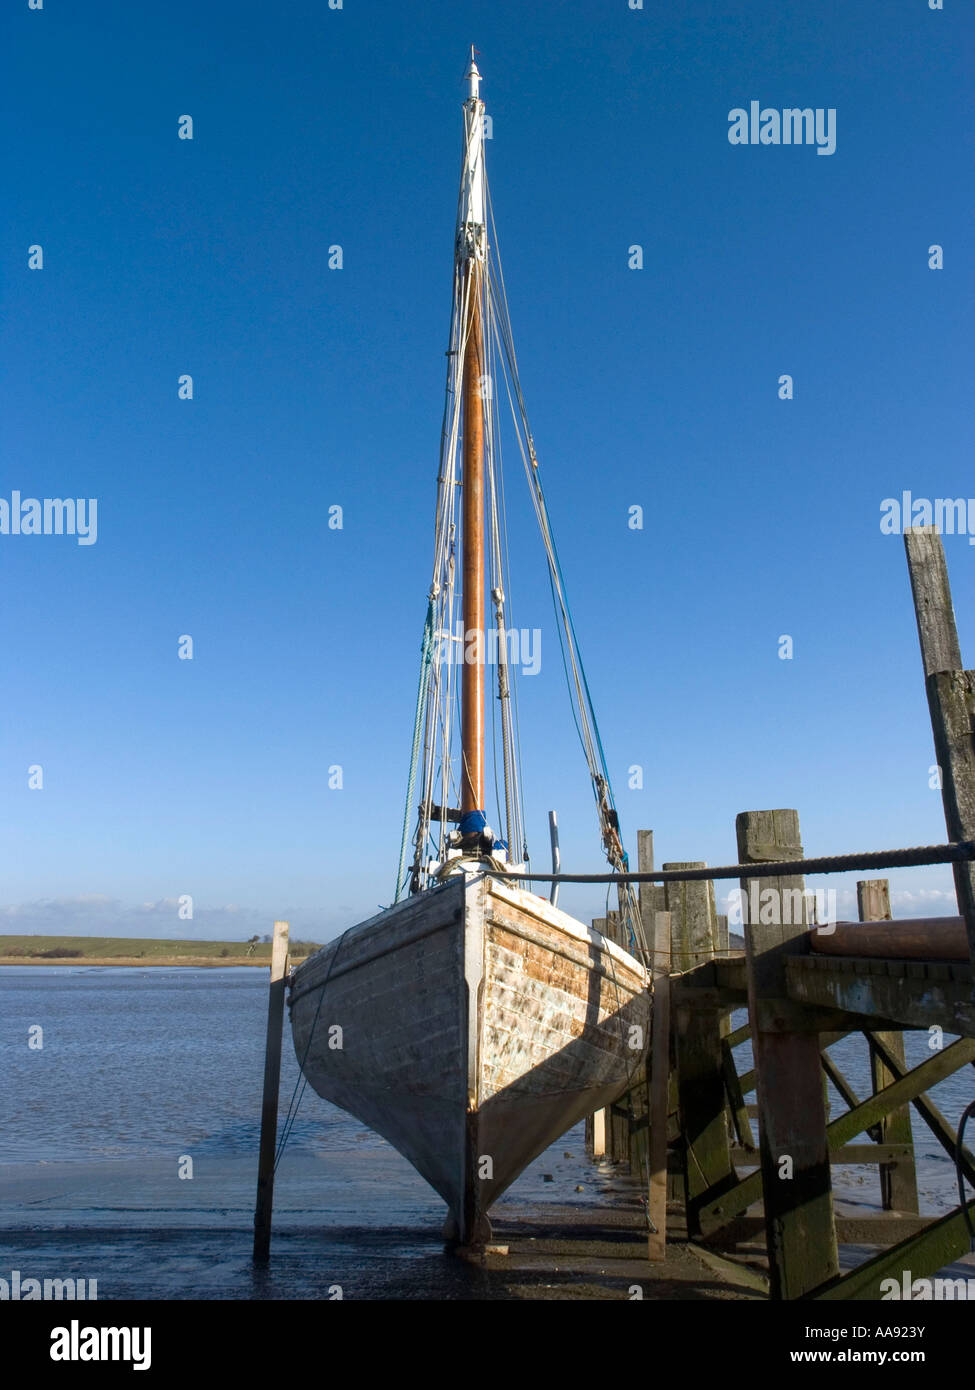 Ploughboy on the slipway on the River Wyre Estuary at Skippool Lancashire - Stock Image